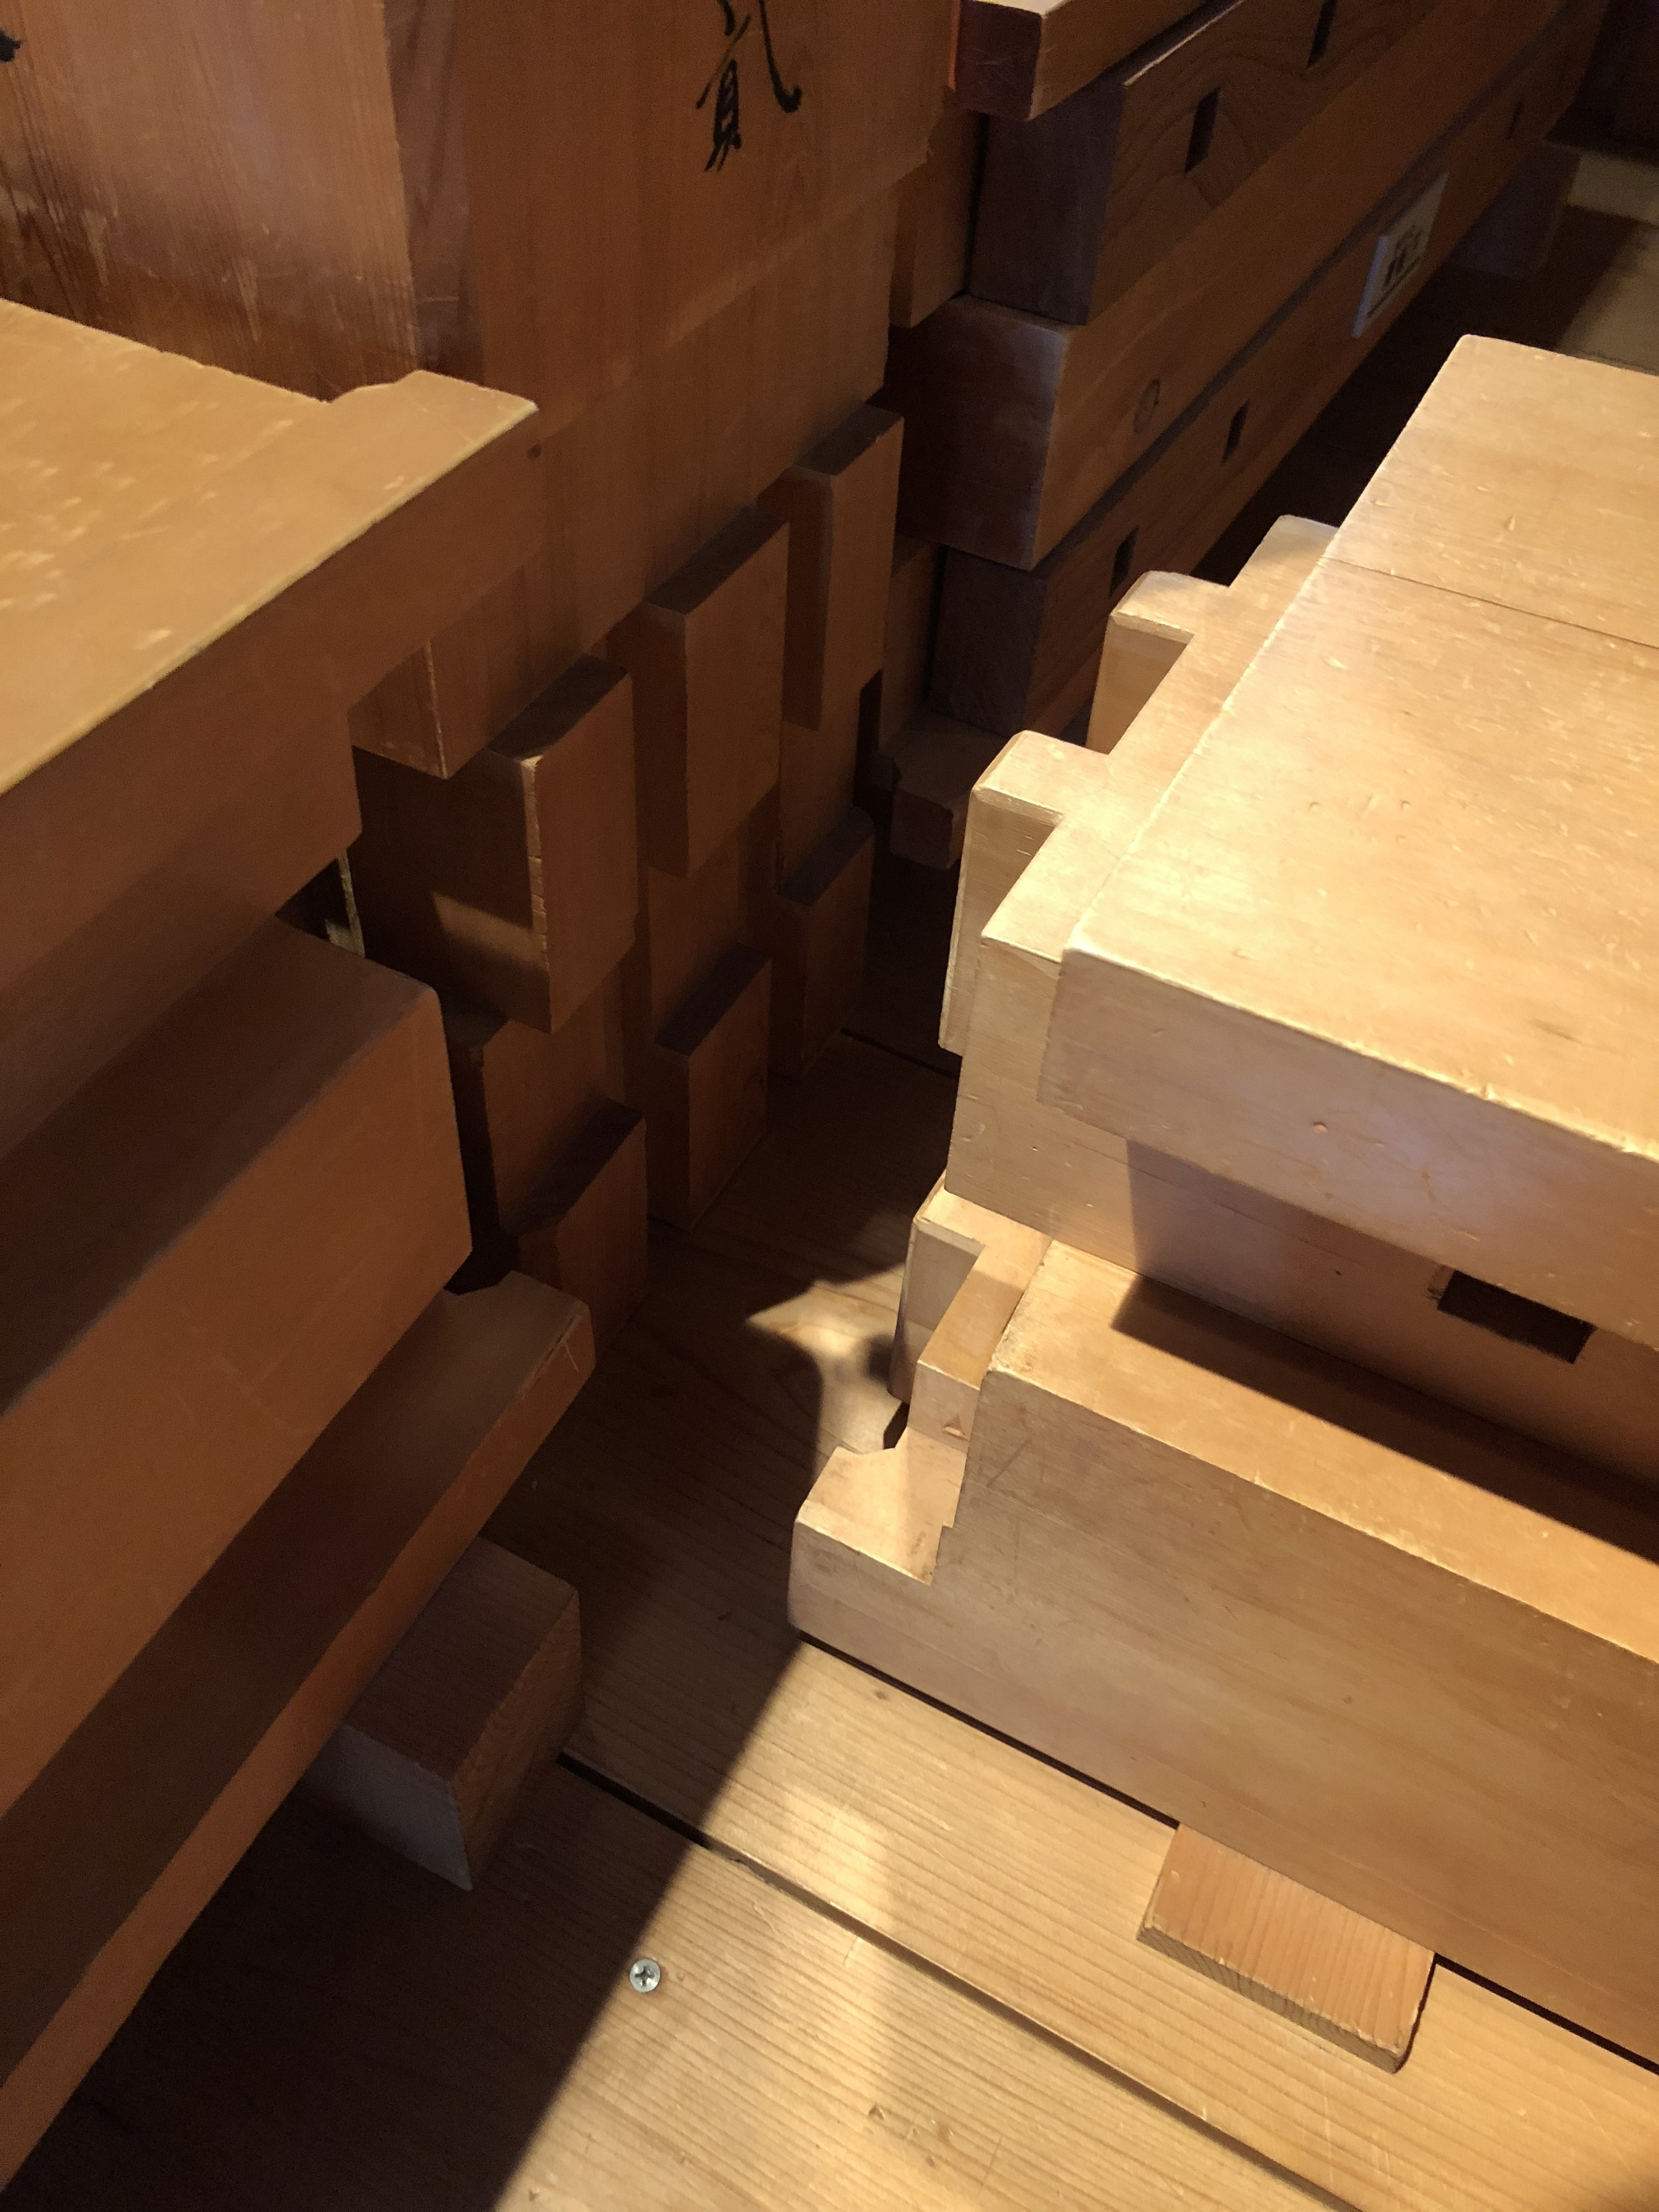 Complex traditional joinery in Kanazawa Castle